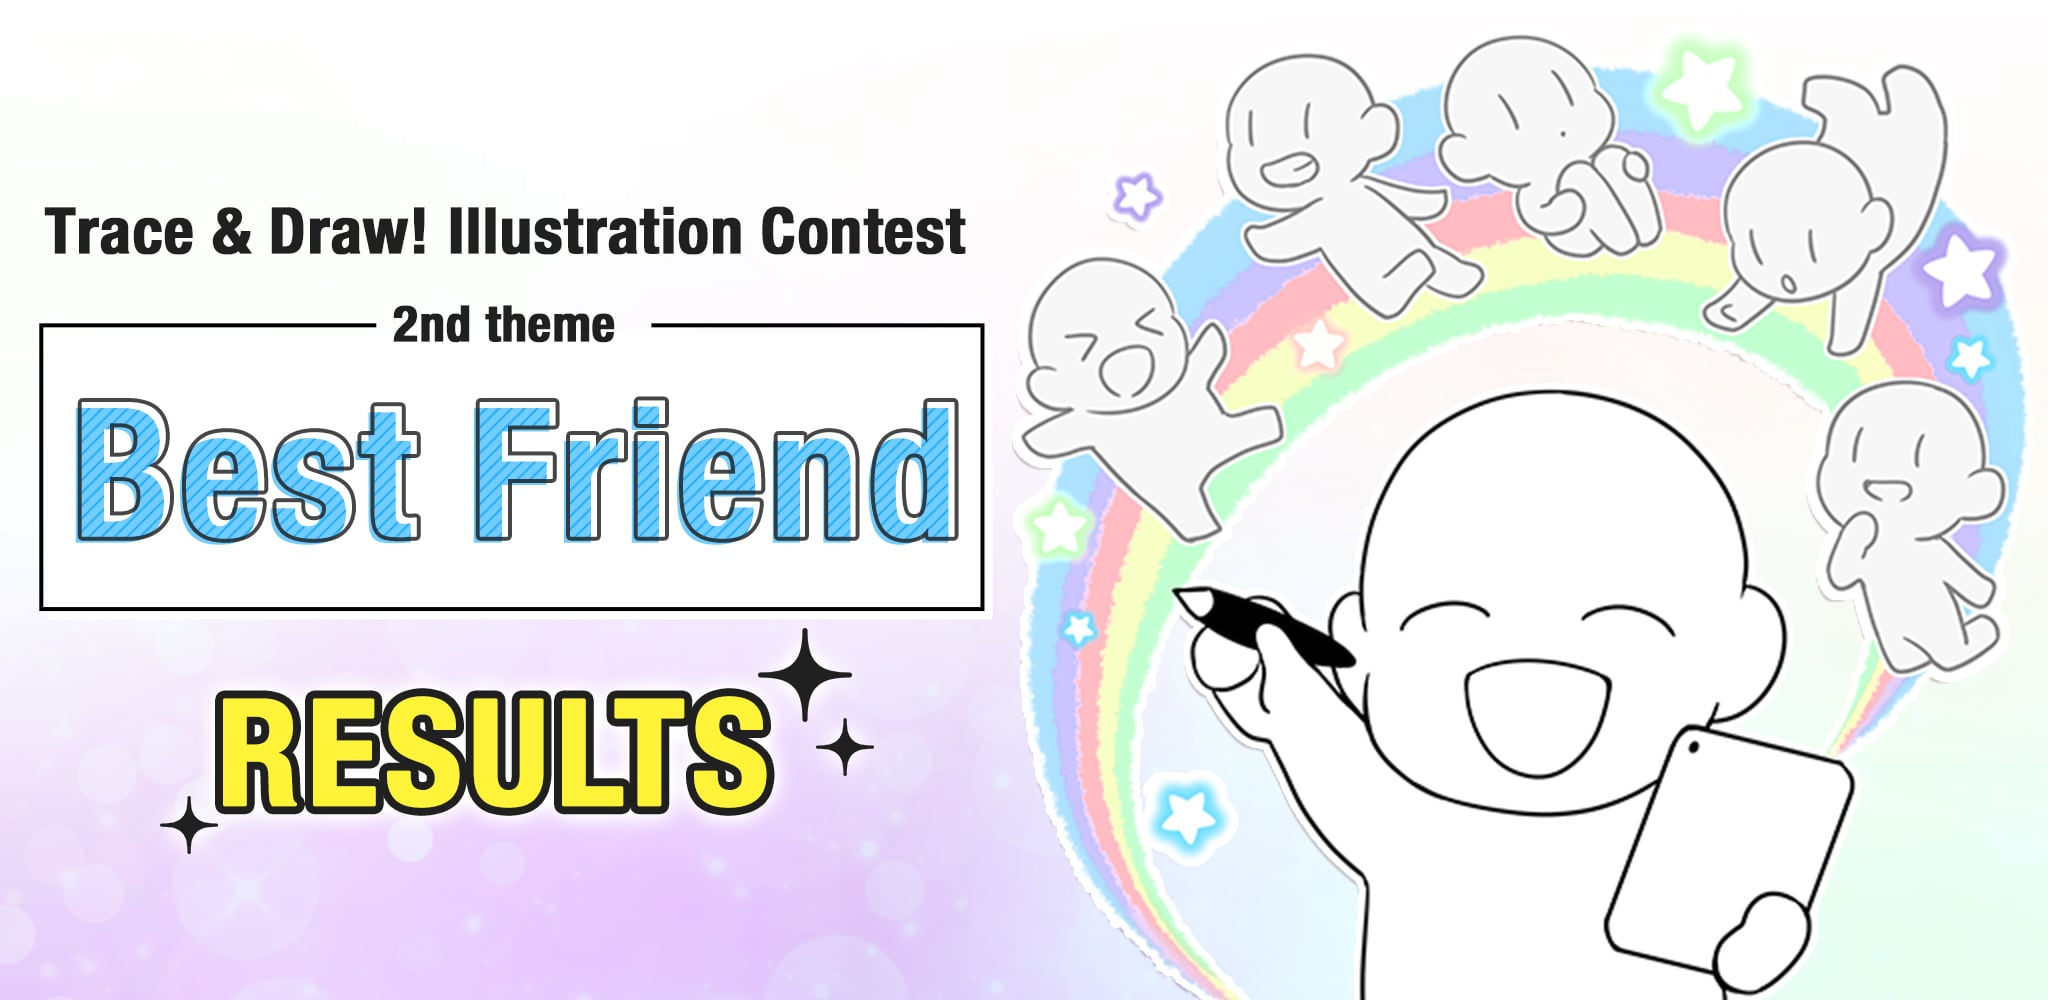 2nd Trace & Draw! Illustration Contest Results | Contest - ART street by MediBang